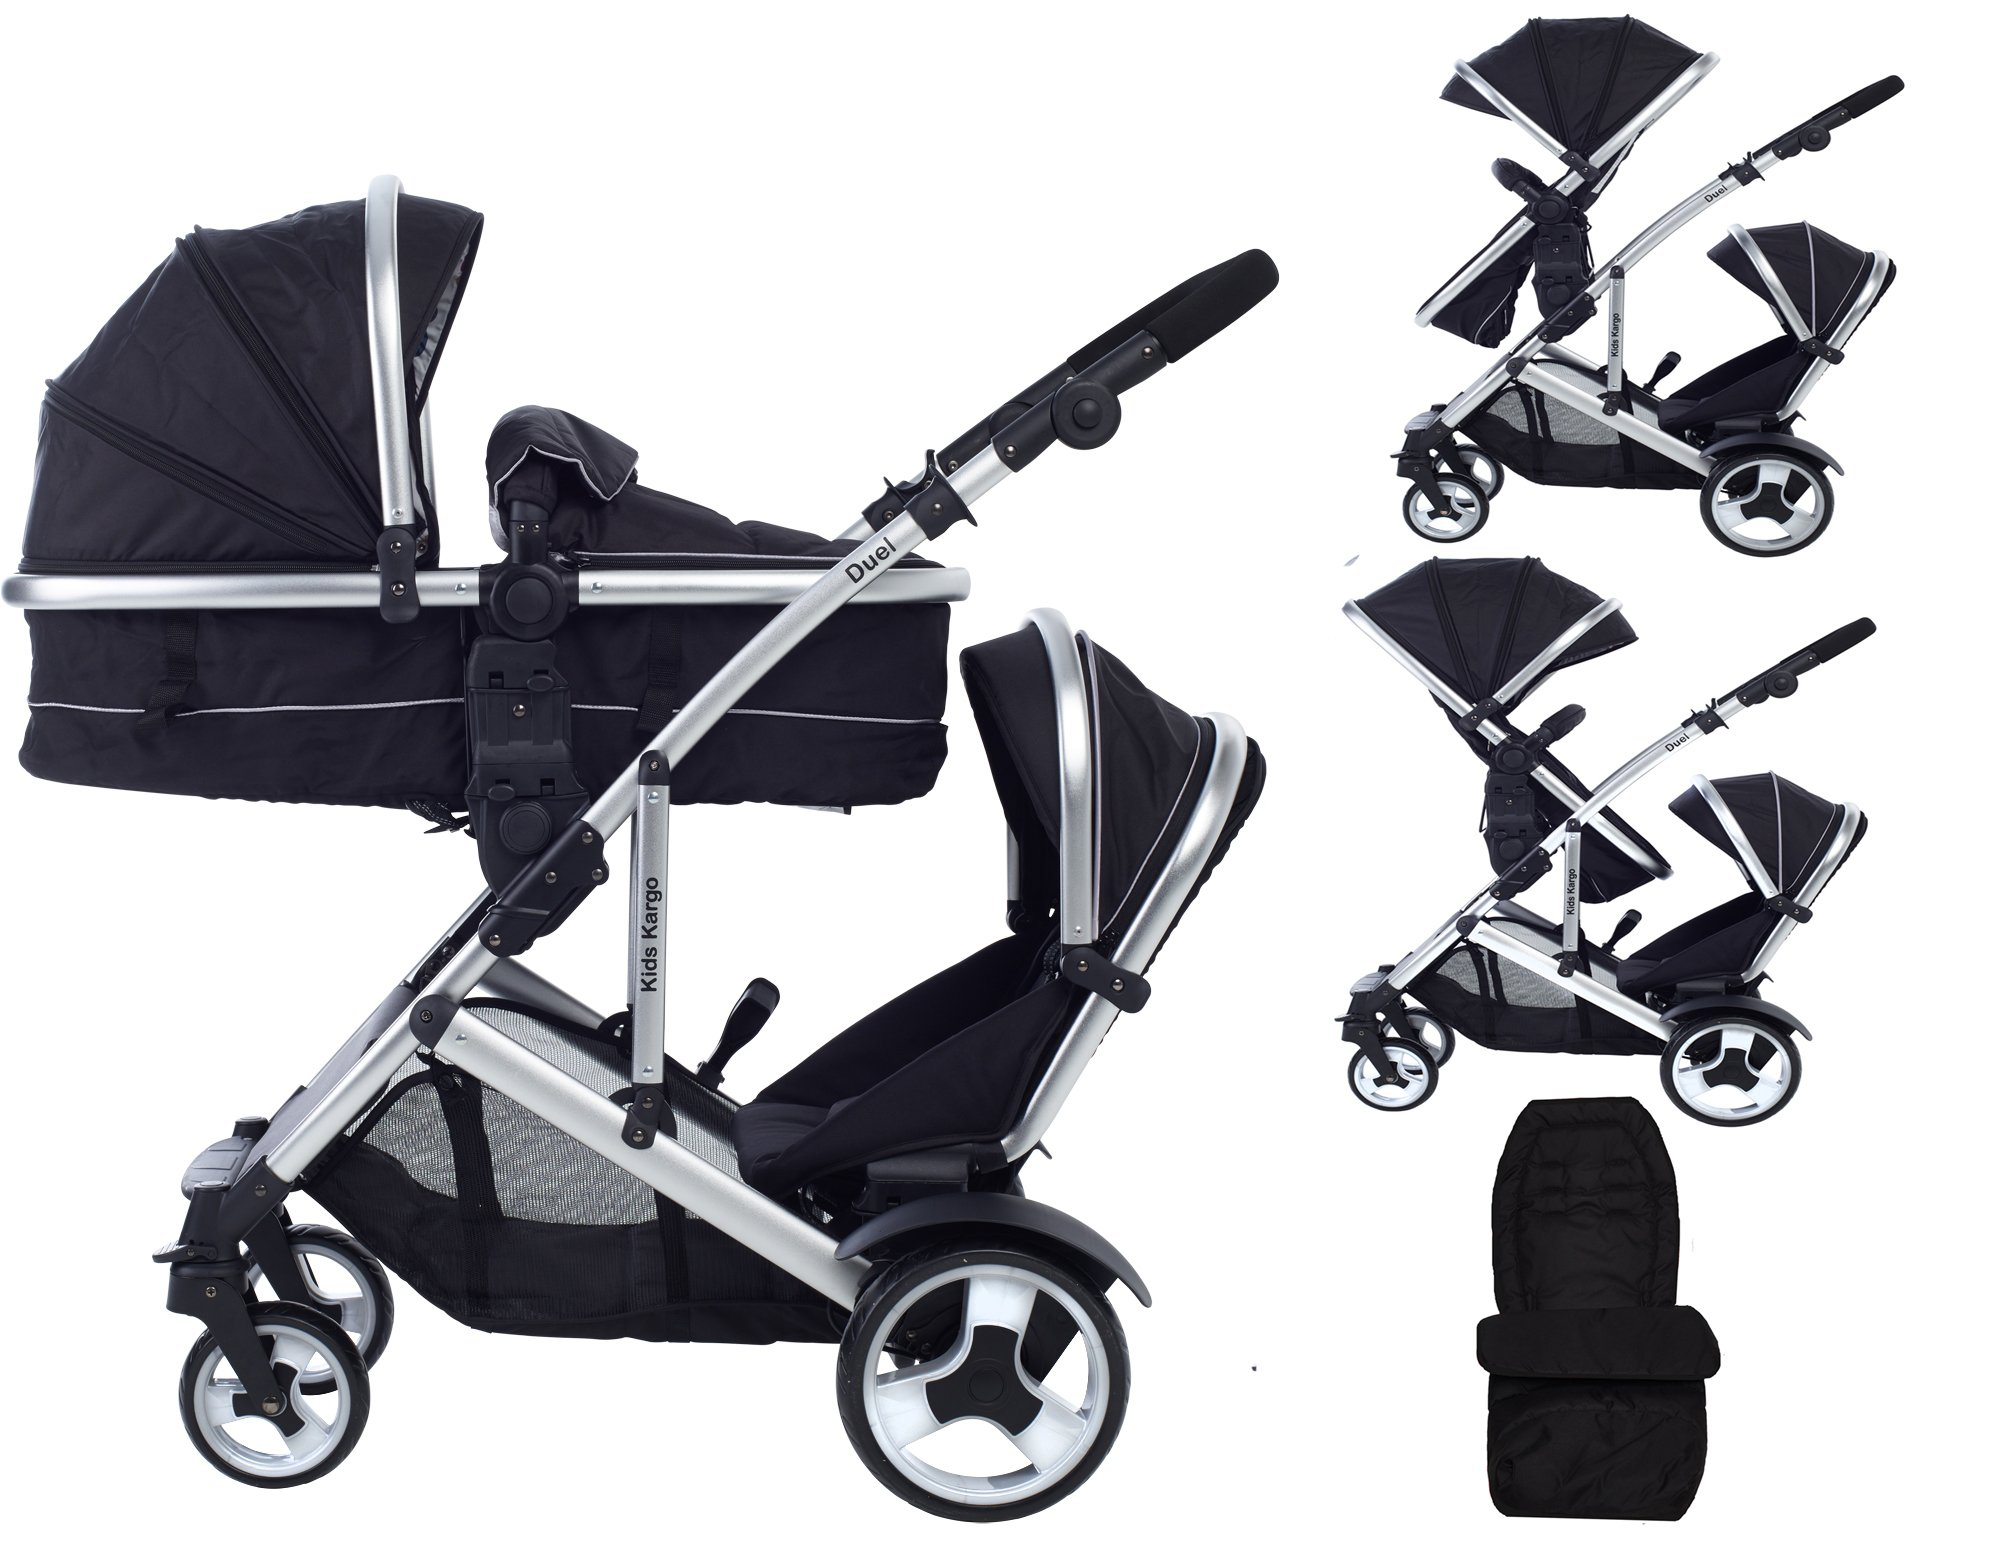 Kids Kargo Duel Combo Tandem Double Pushchair Stroller, Midnight Black Kids Kargo Tandem double pushchair suitable for newborn and toddler Complete with carrycot that converts to a seat unto to grow with your baby. carrycot has soft padded lining which zips off and mattress.. Carrycot & car seats fit in top or bottom position. compatible car seats; kidz kargo 0+, britax babysafe 0+ (no adapters needed) or maxi cosi adaptors 1